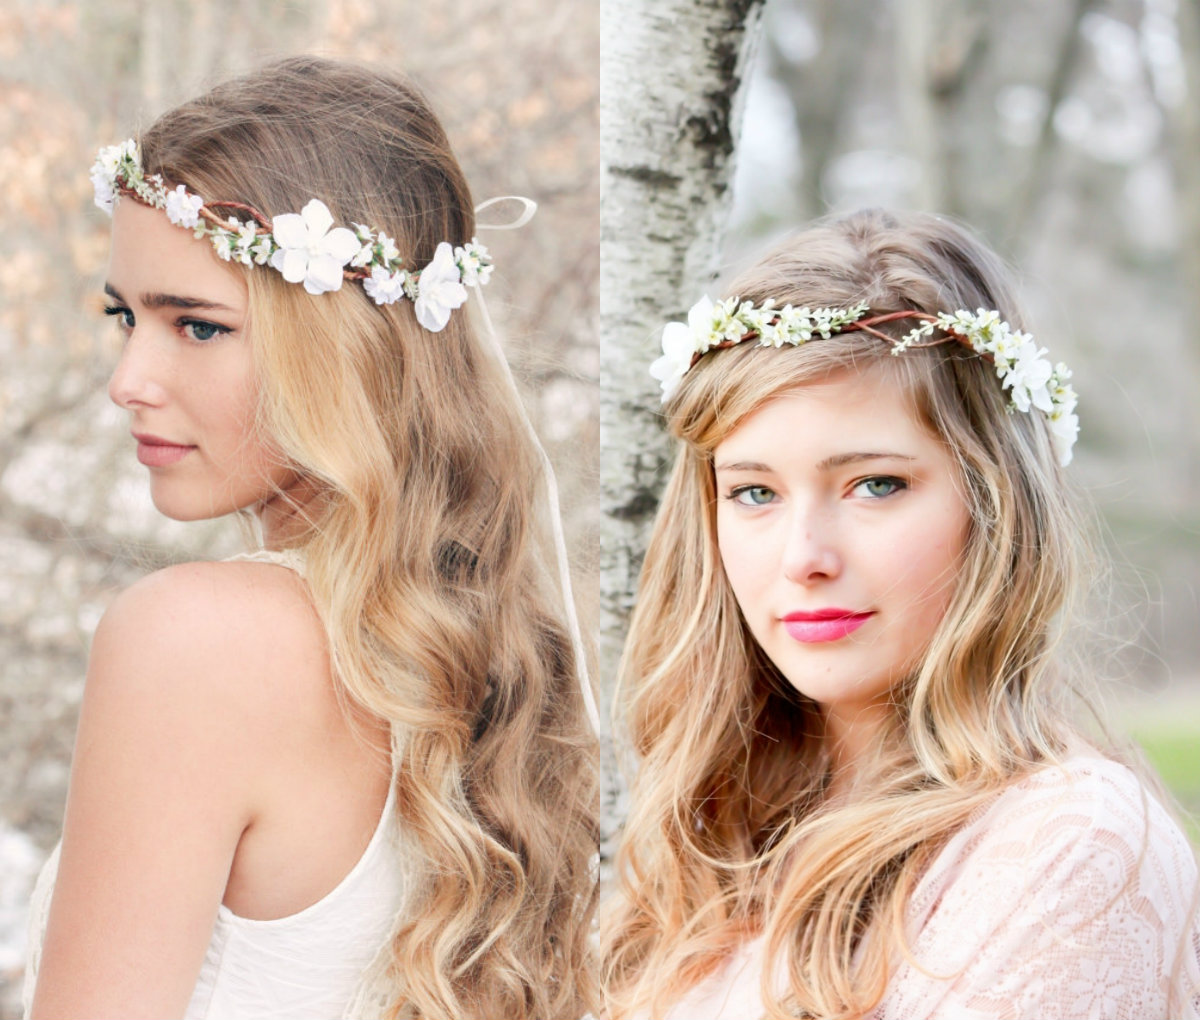 flower crown wedding hairstyles to marry this summer | hairstyles